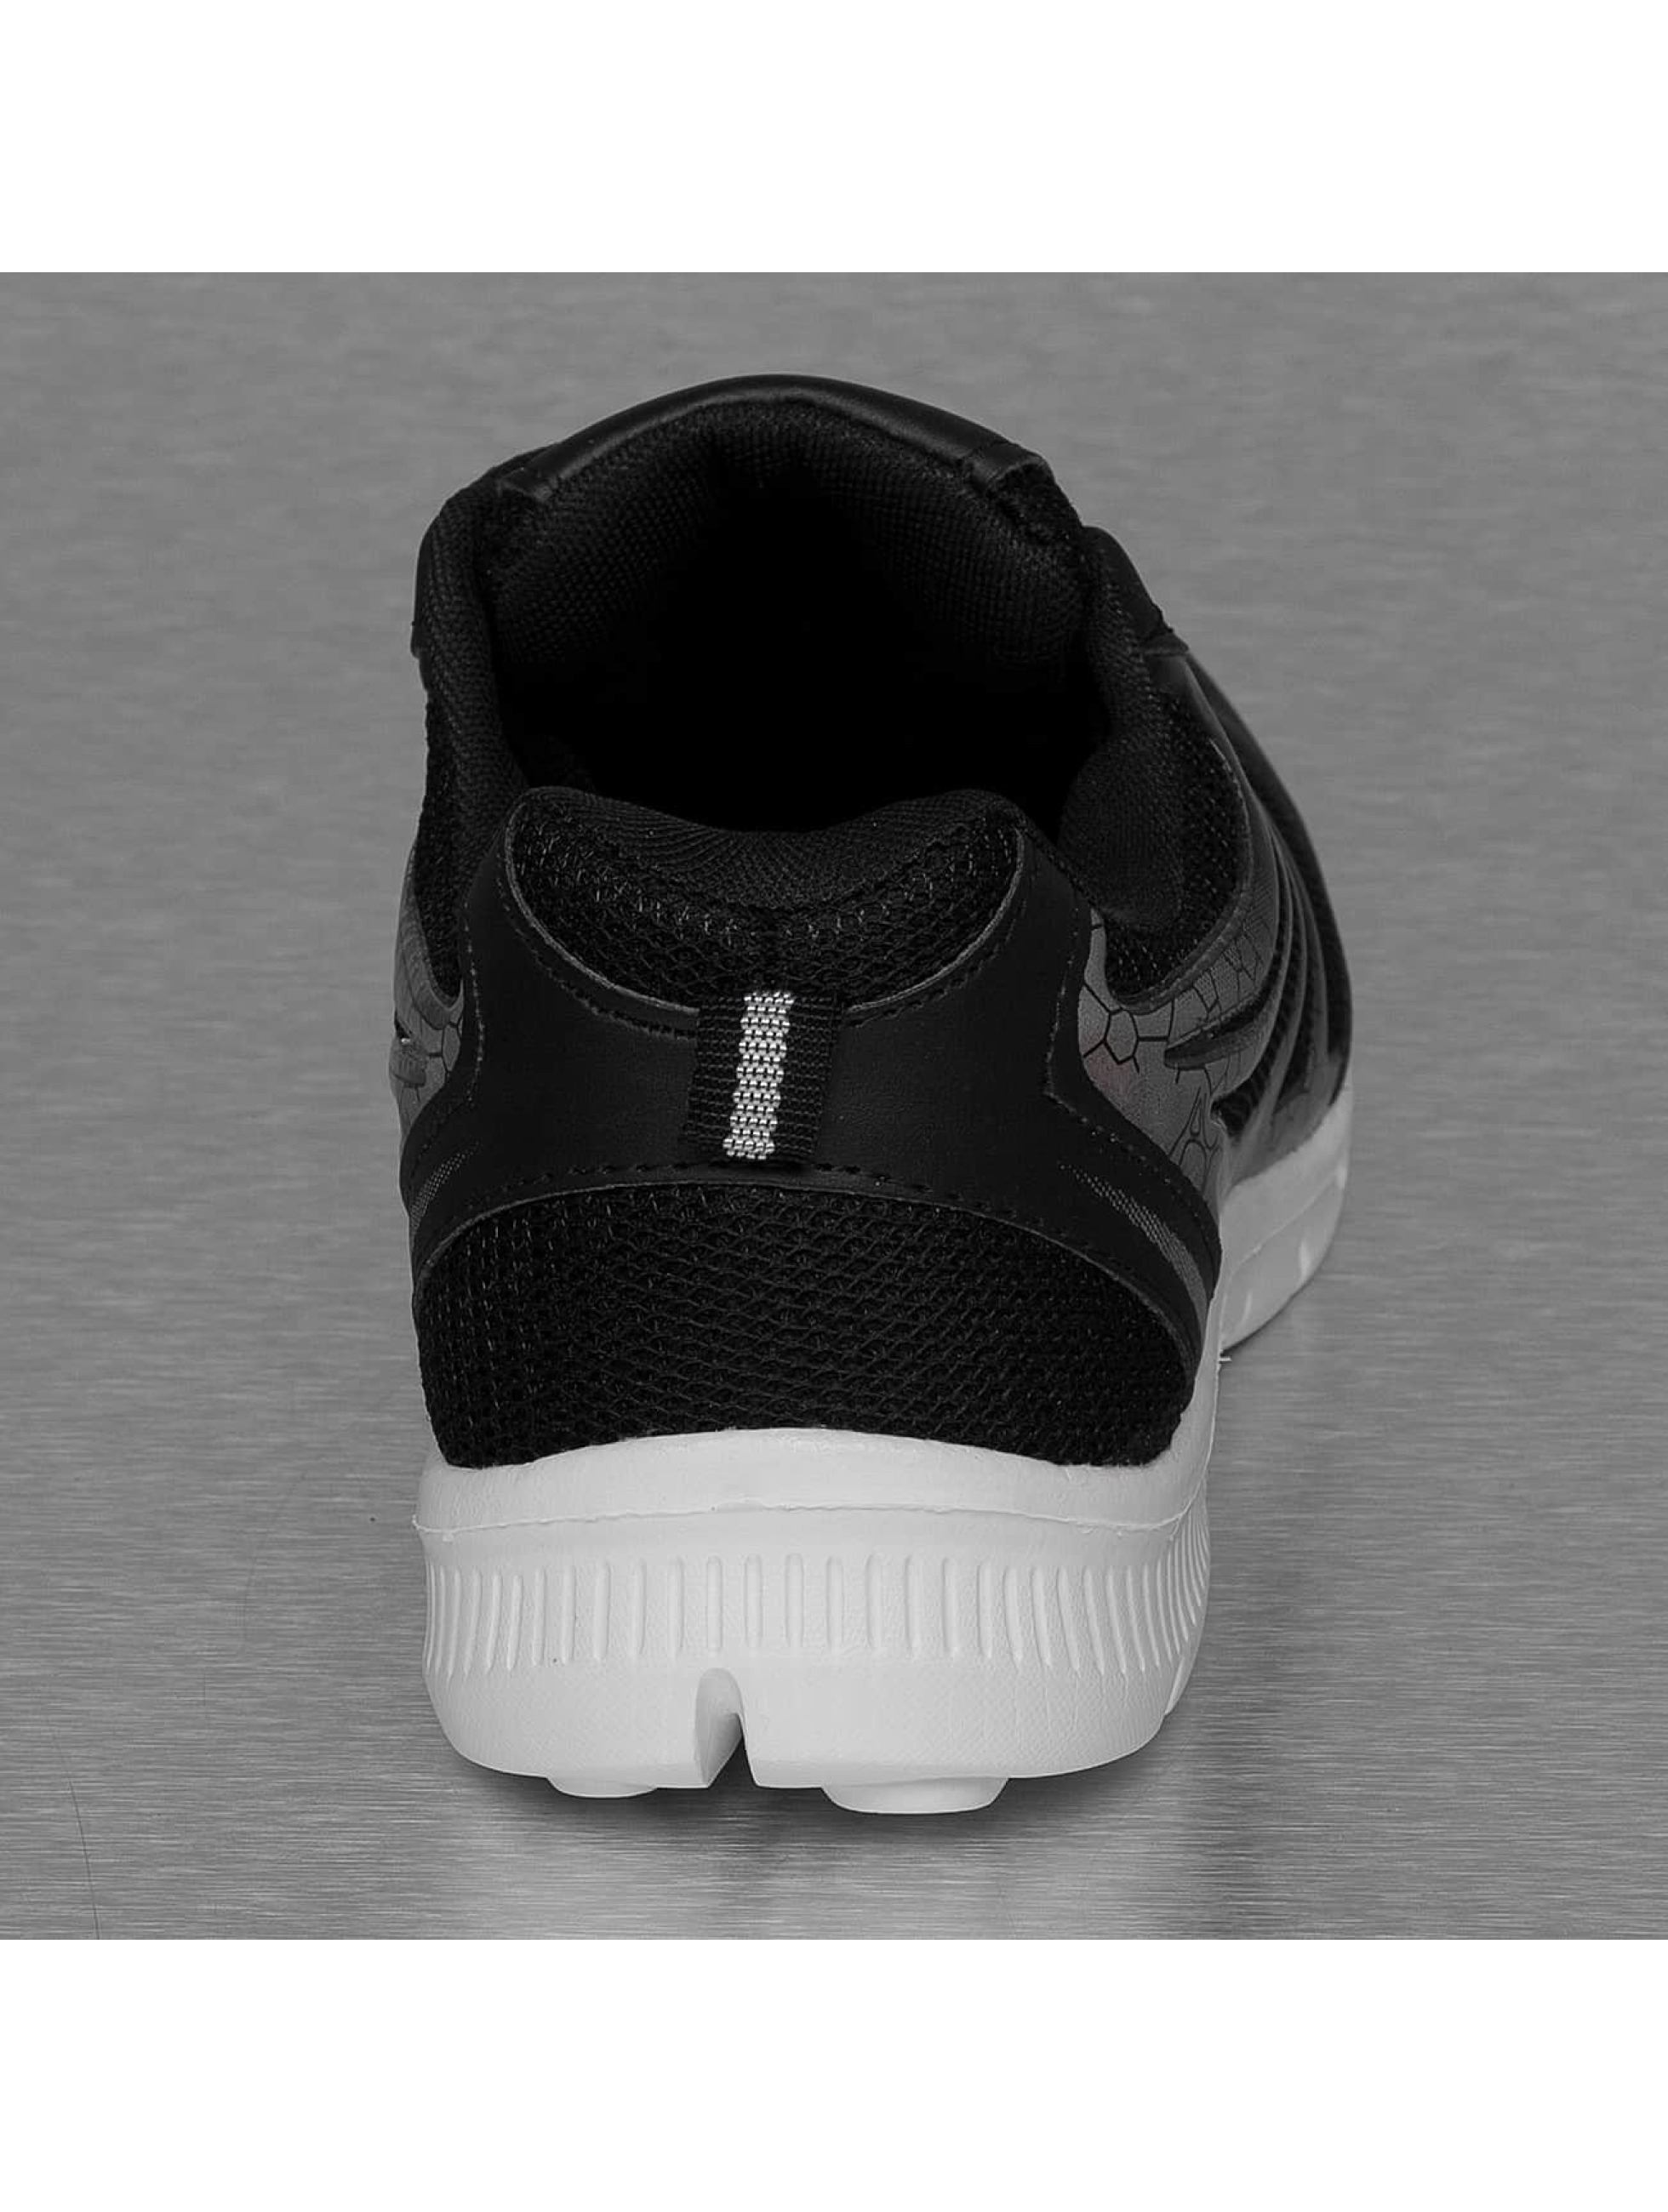 New York Style Sneakers D.T. black